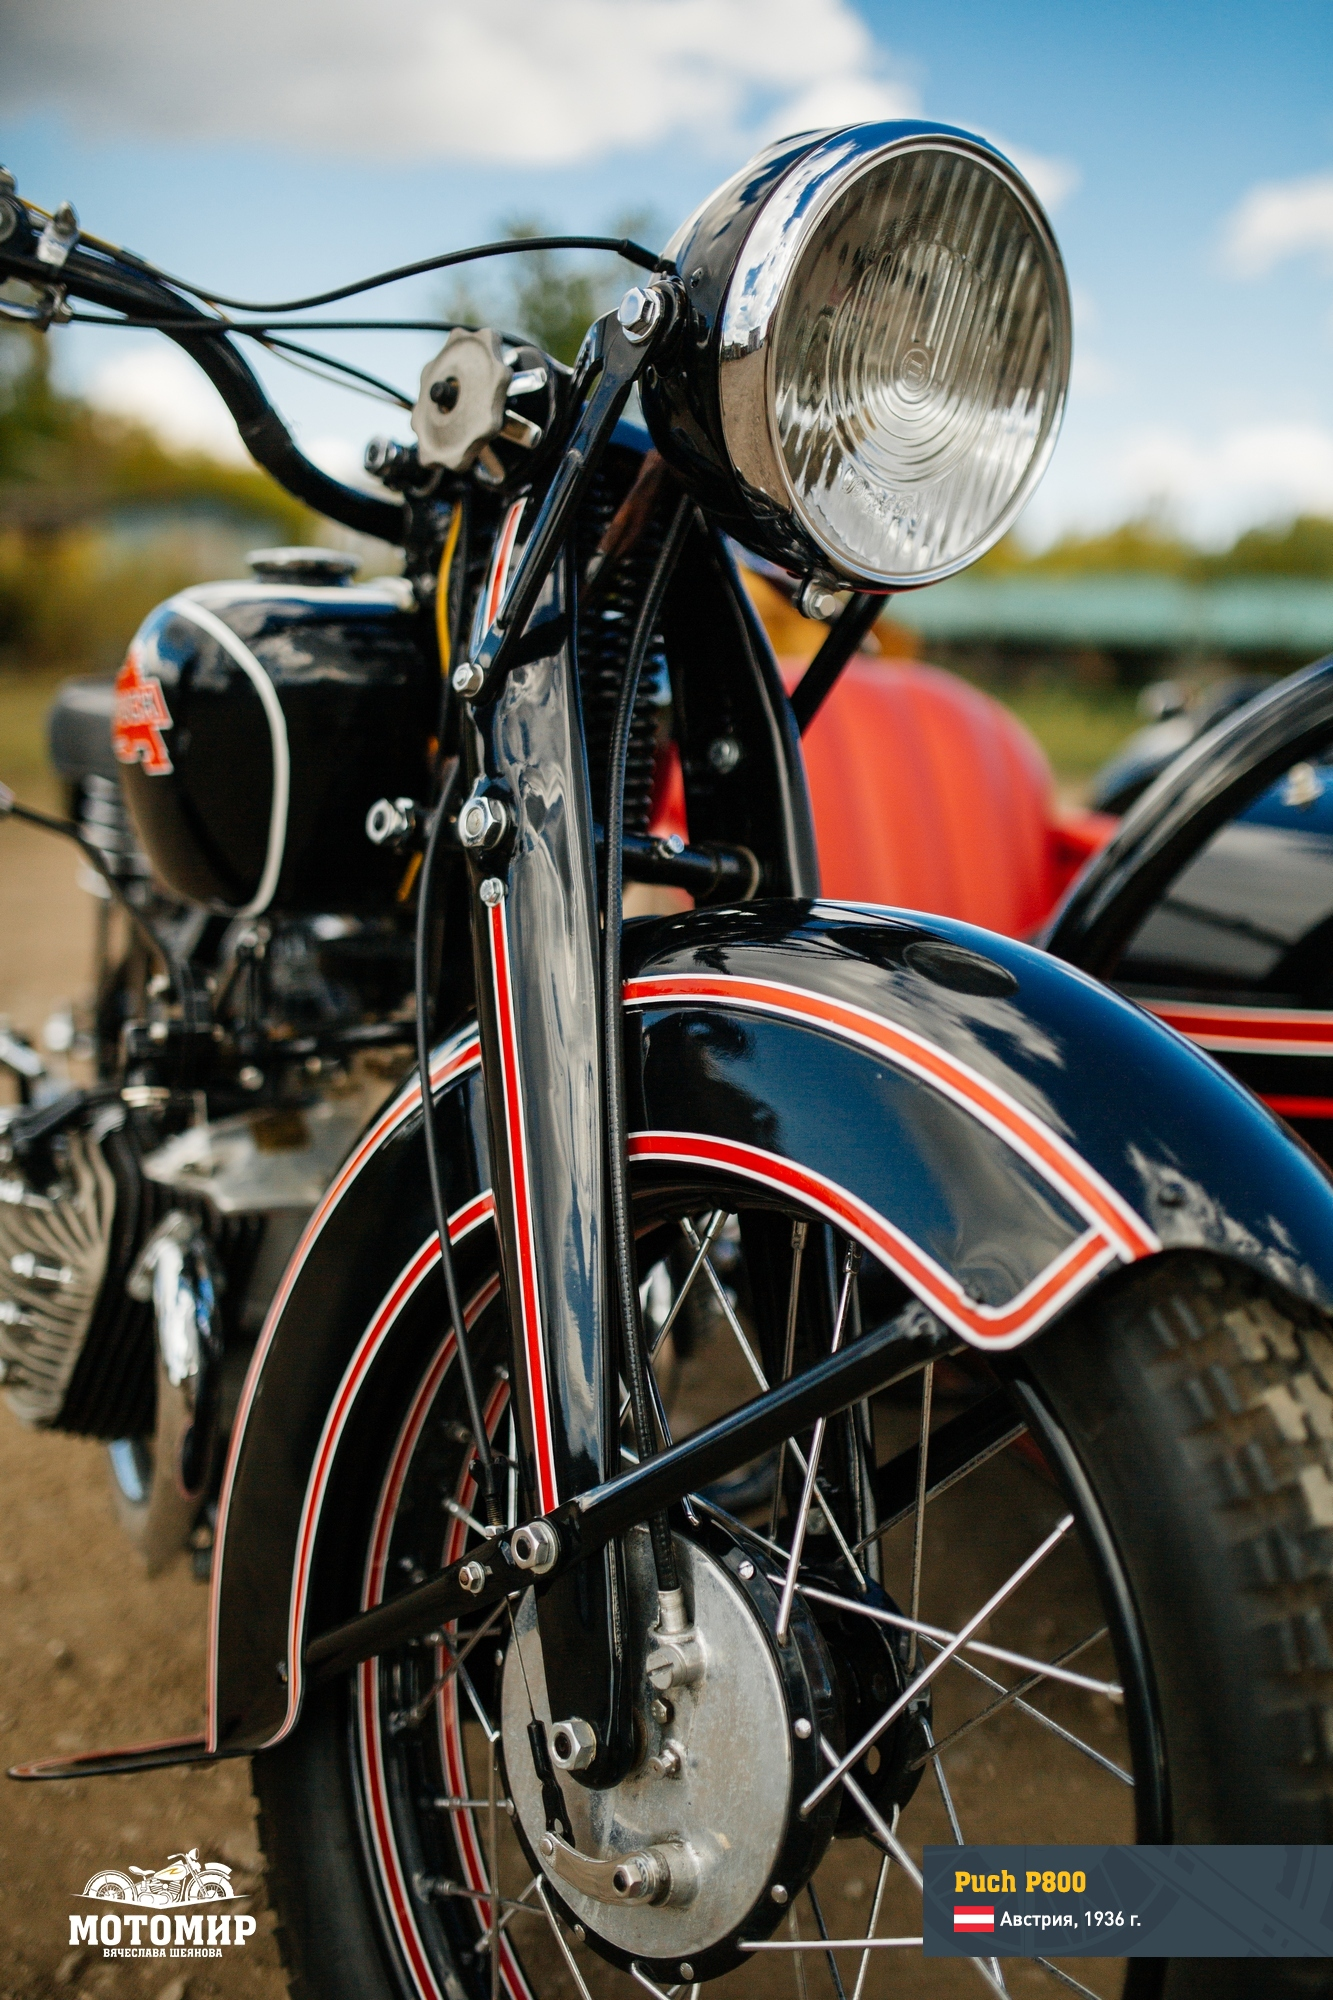 puch-p800-201510-web-32